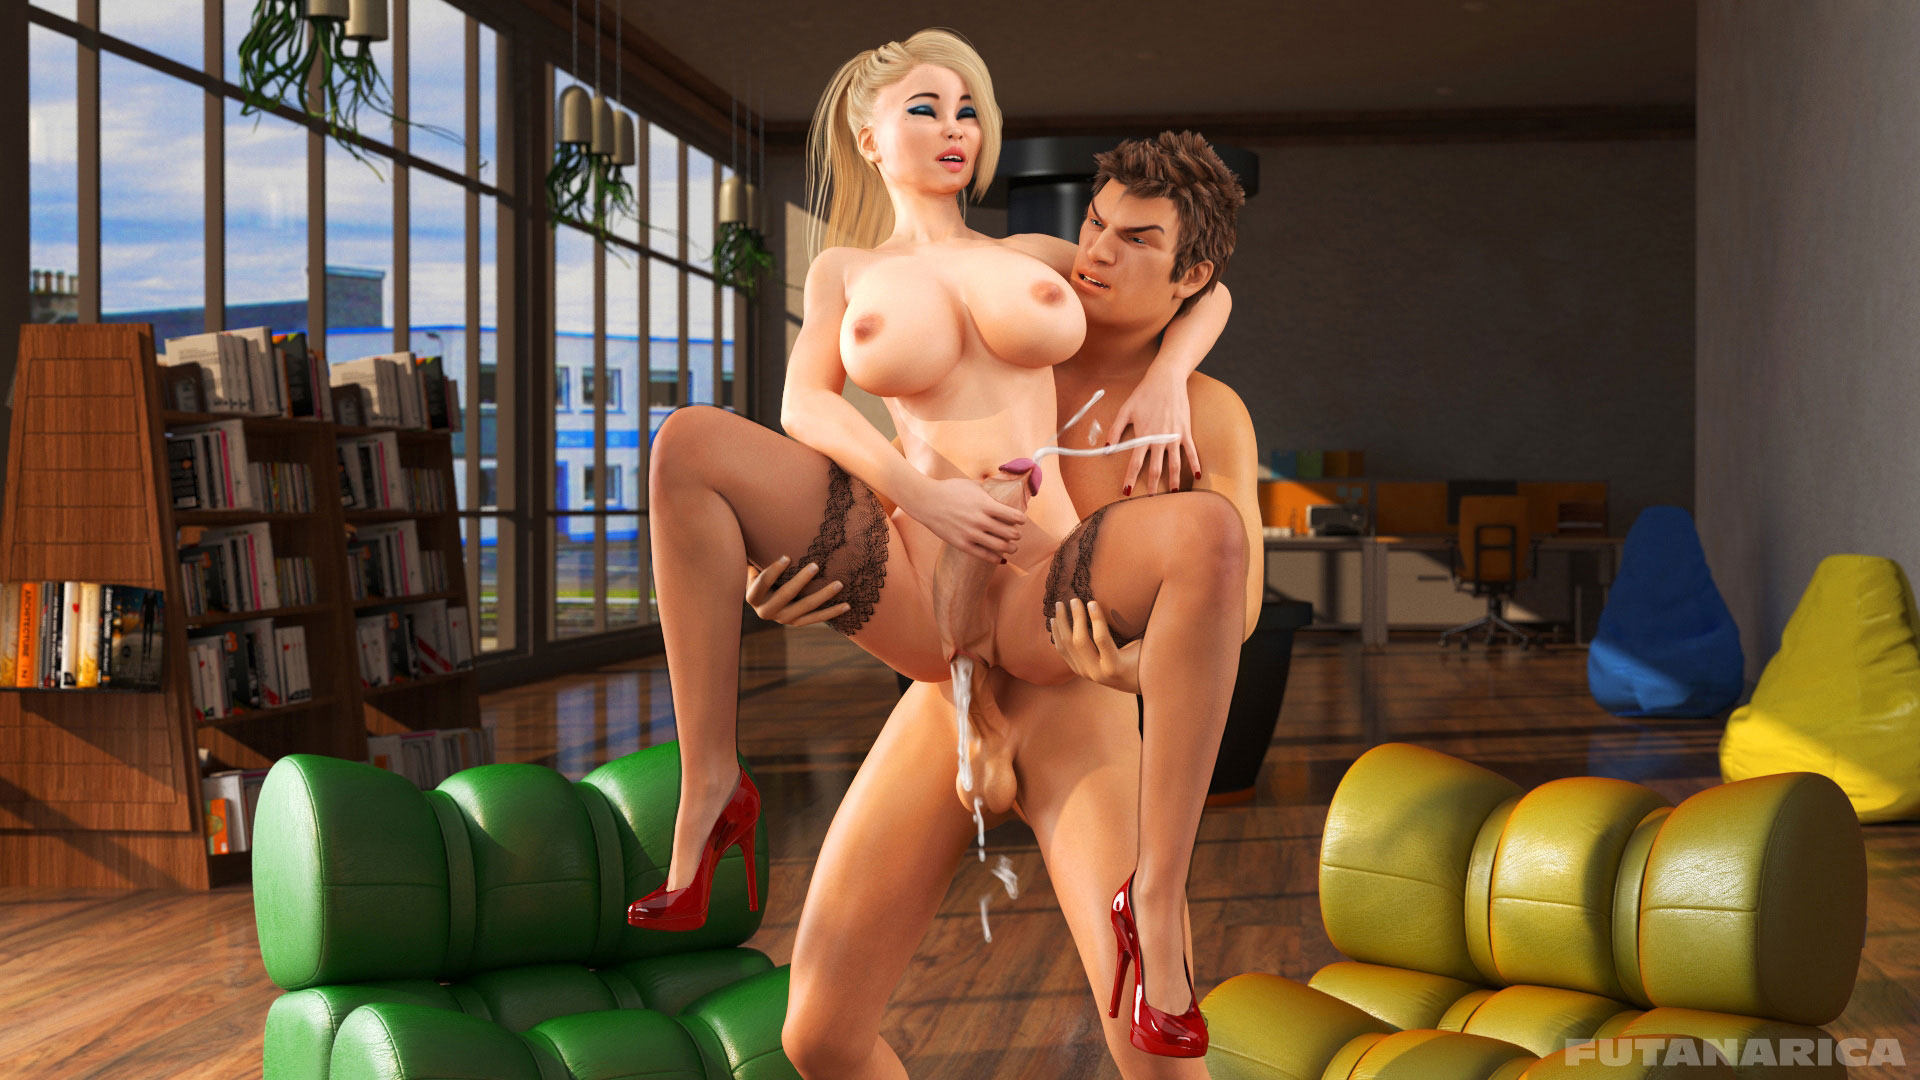 Cartoon sex games porn pics